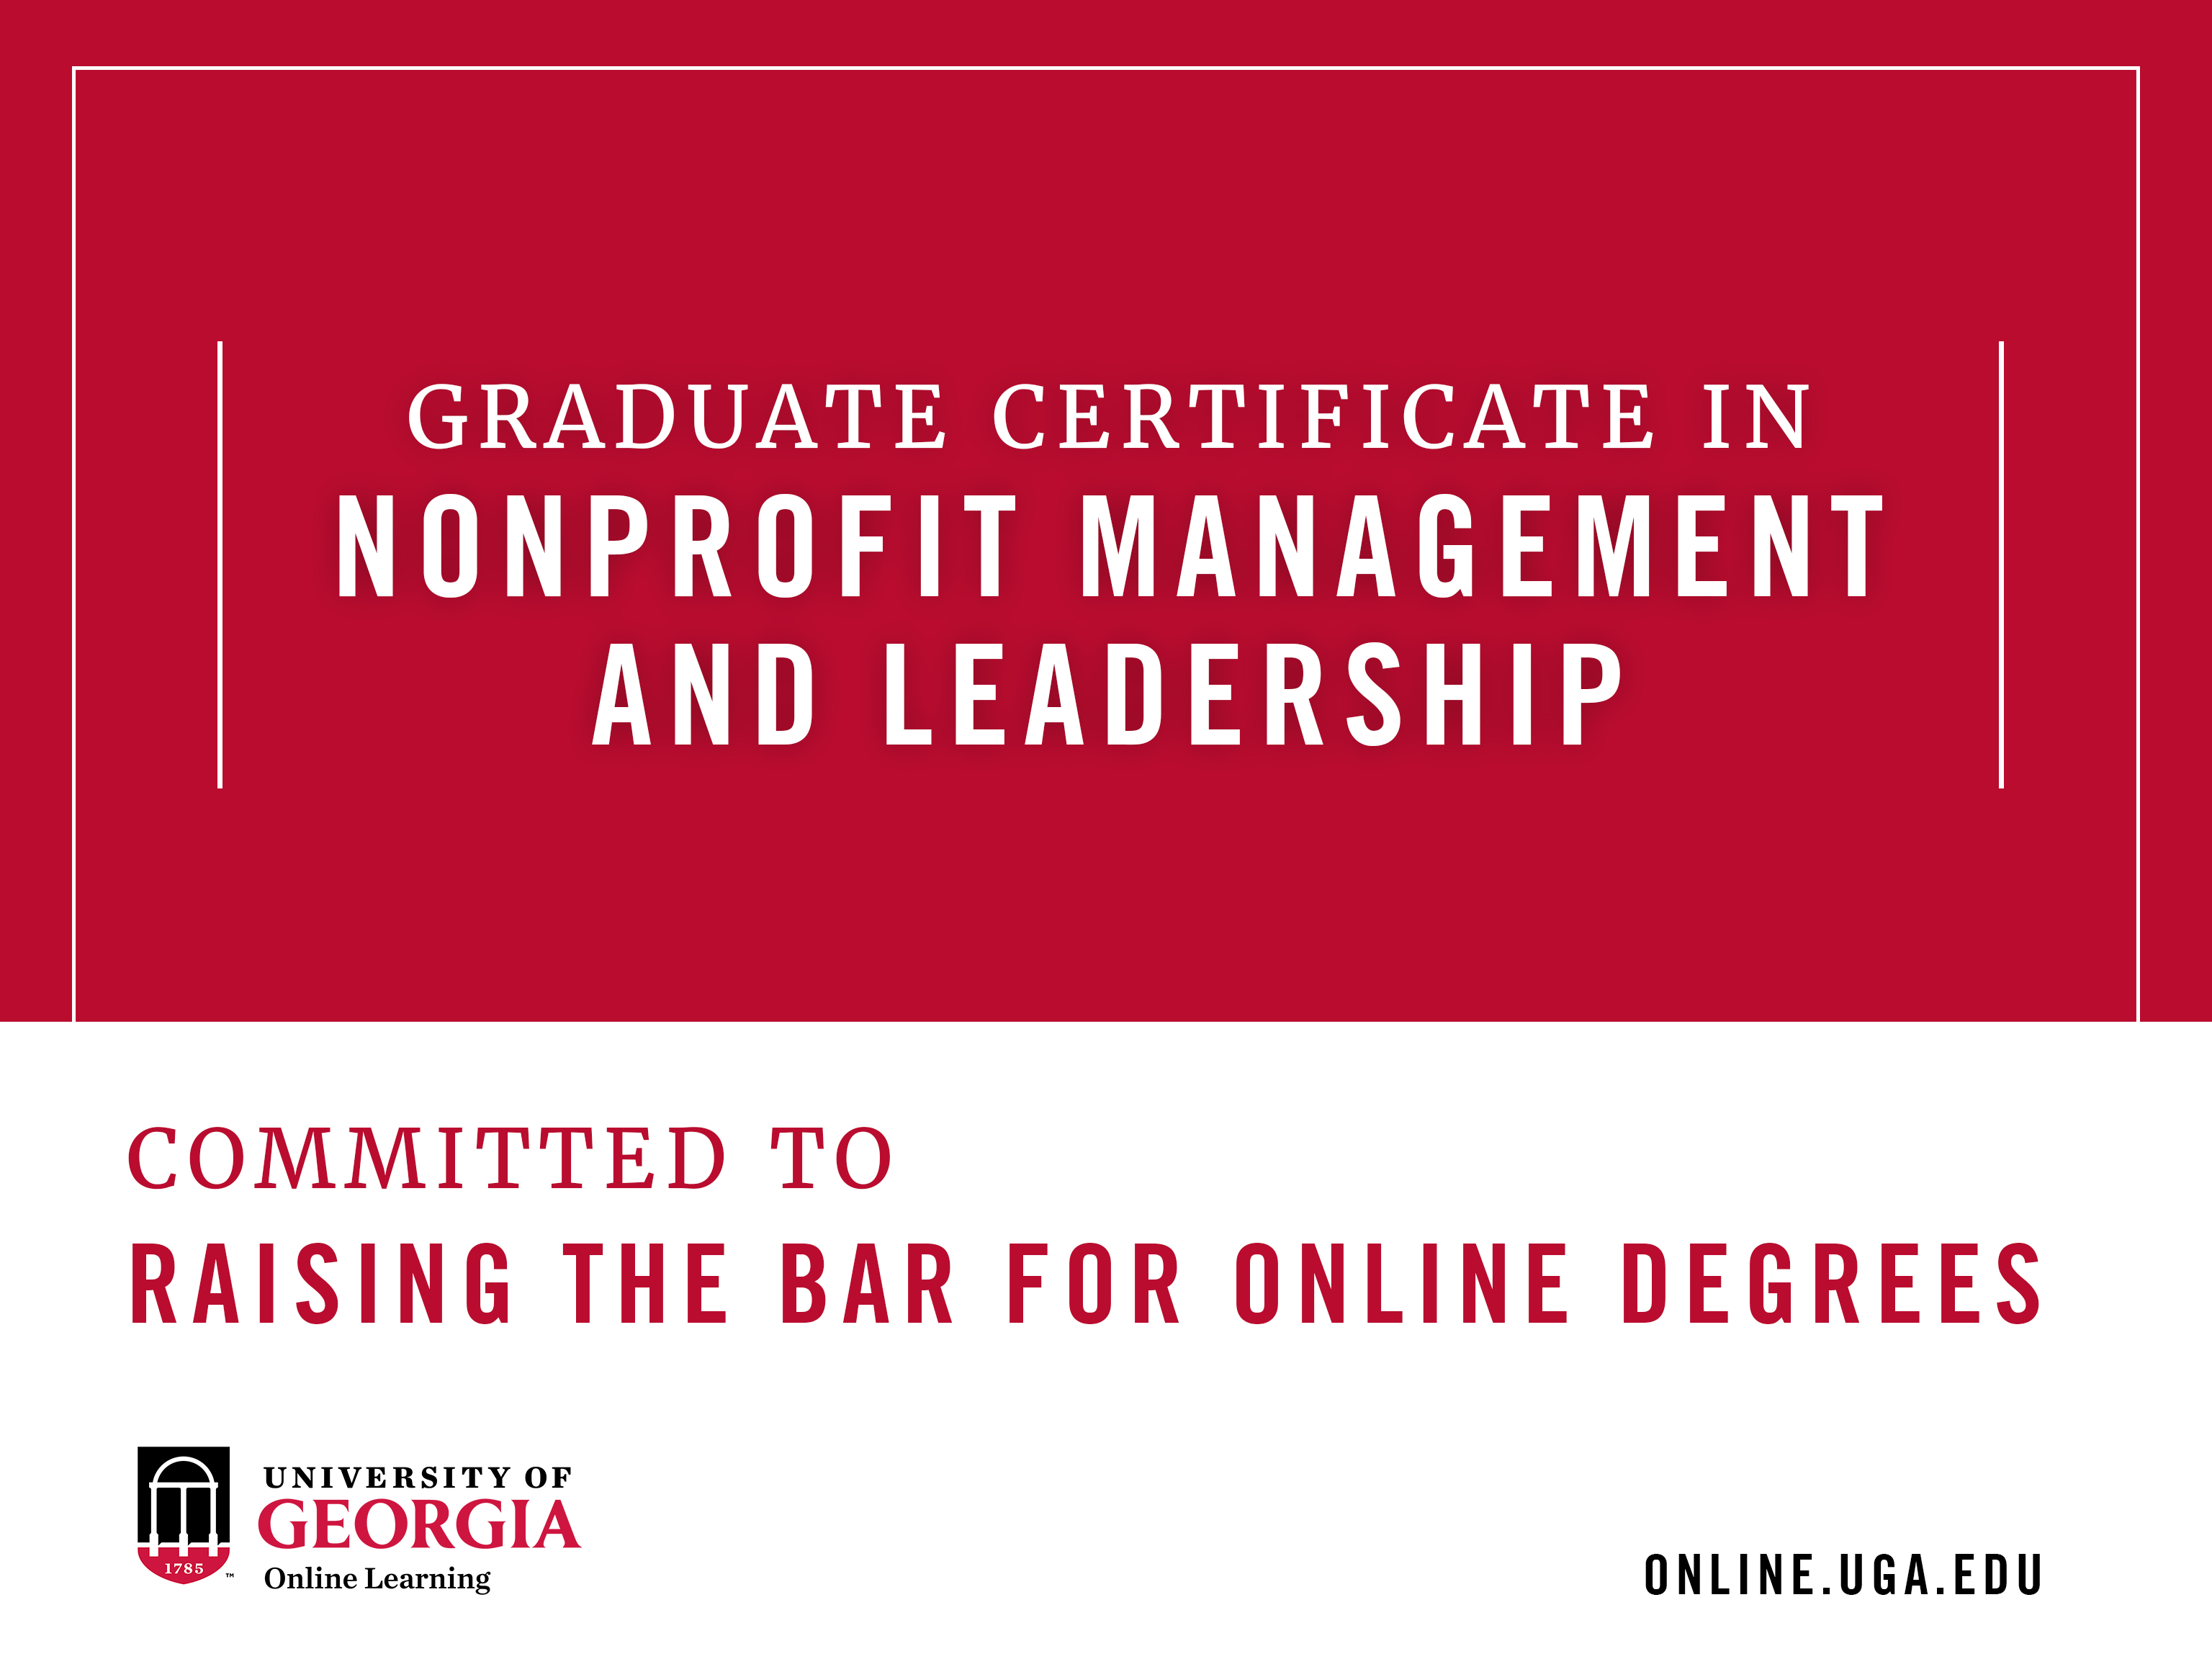 Top 3 Reasons To Pursue A Nonprofit Management And Leadership Career